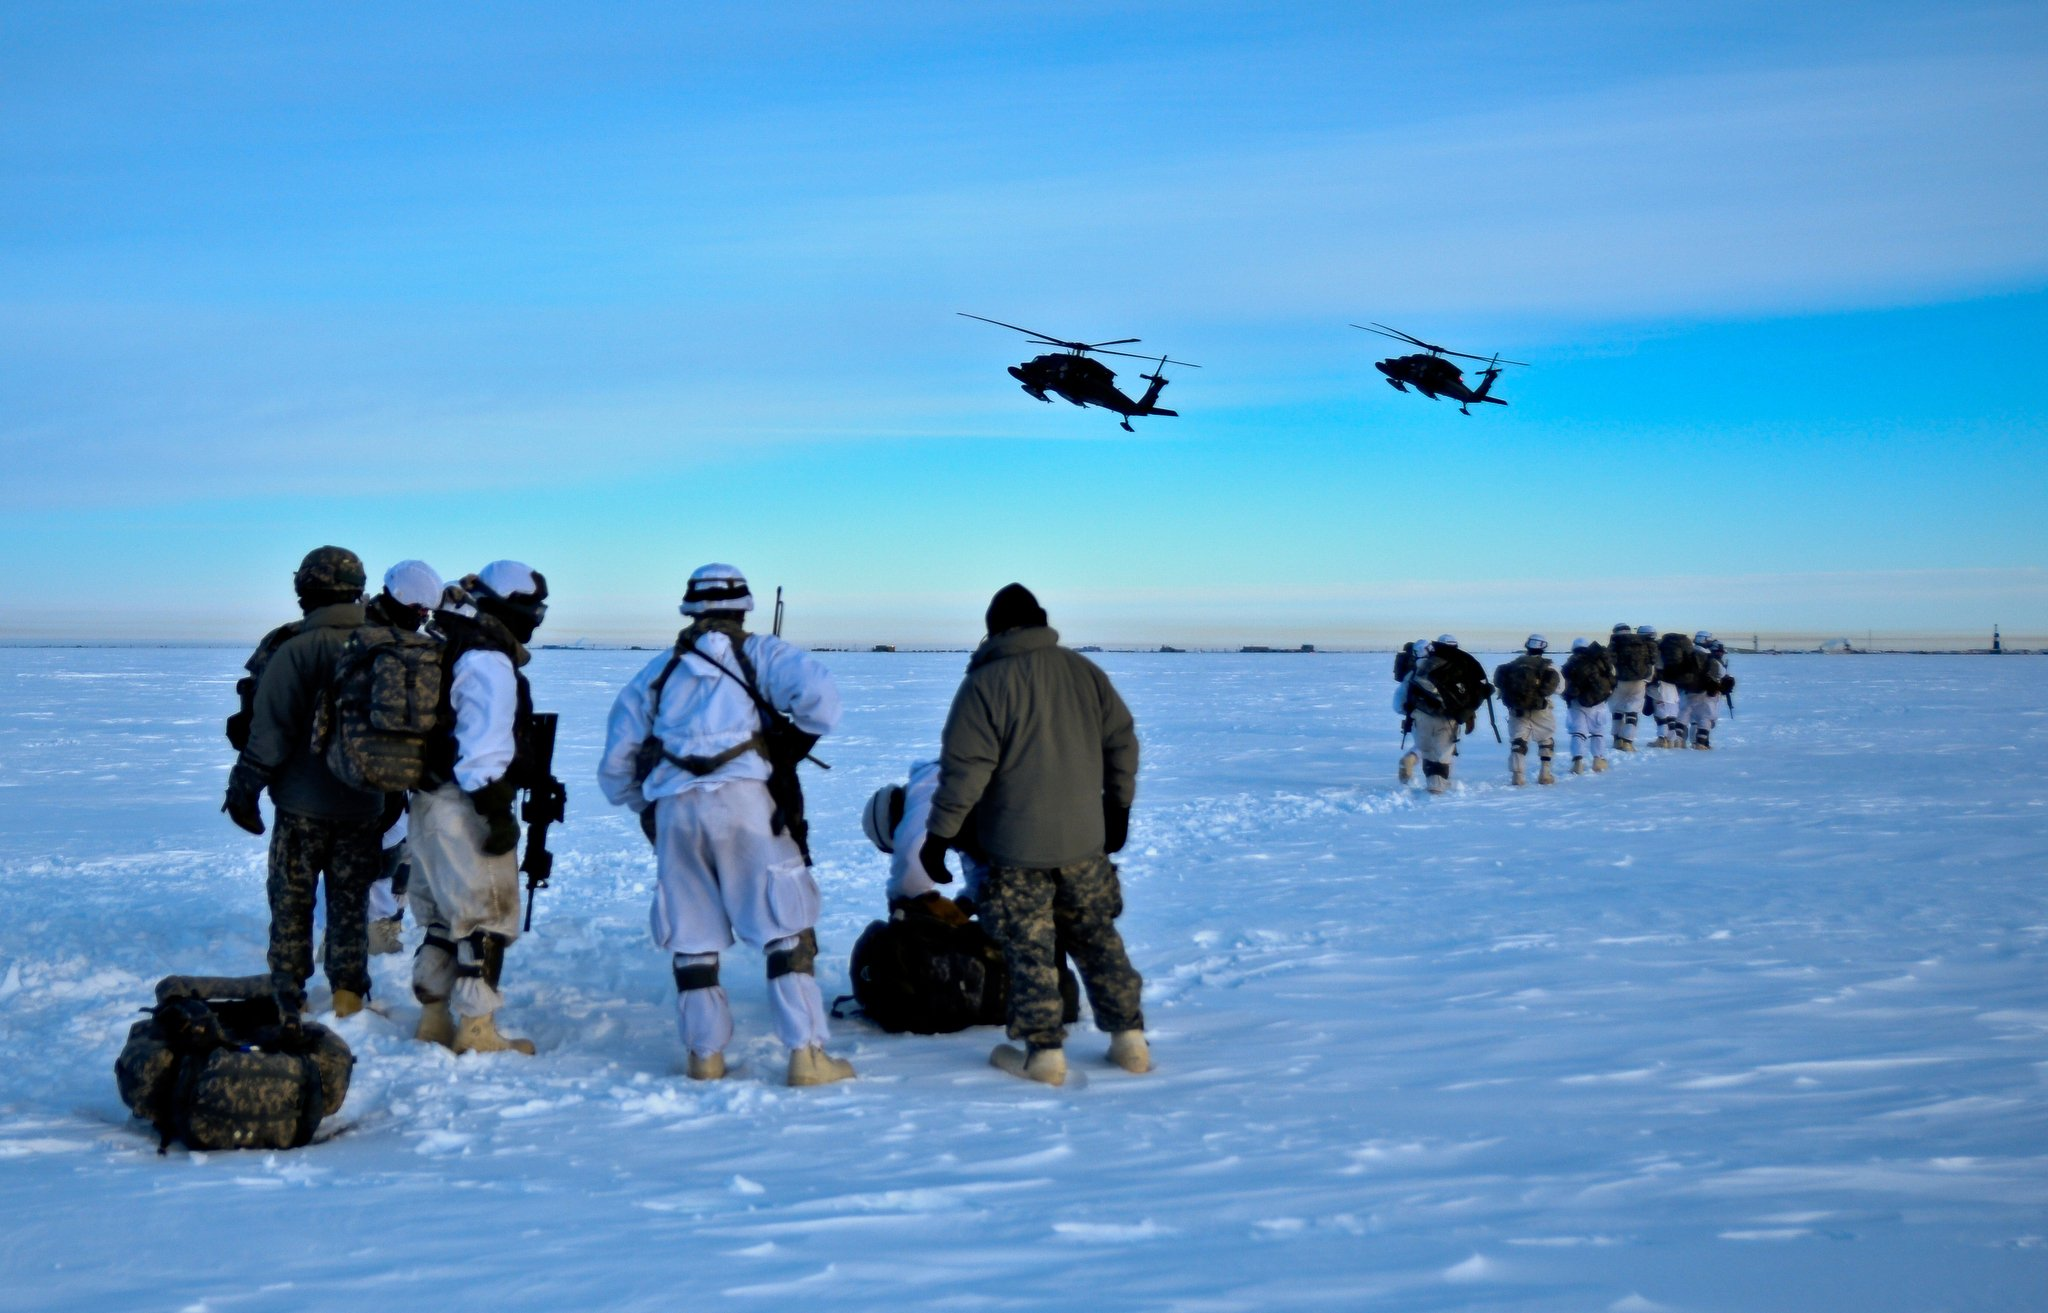 Growing security concerns make the Arctic loom larger in Washington